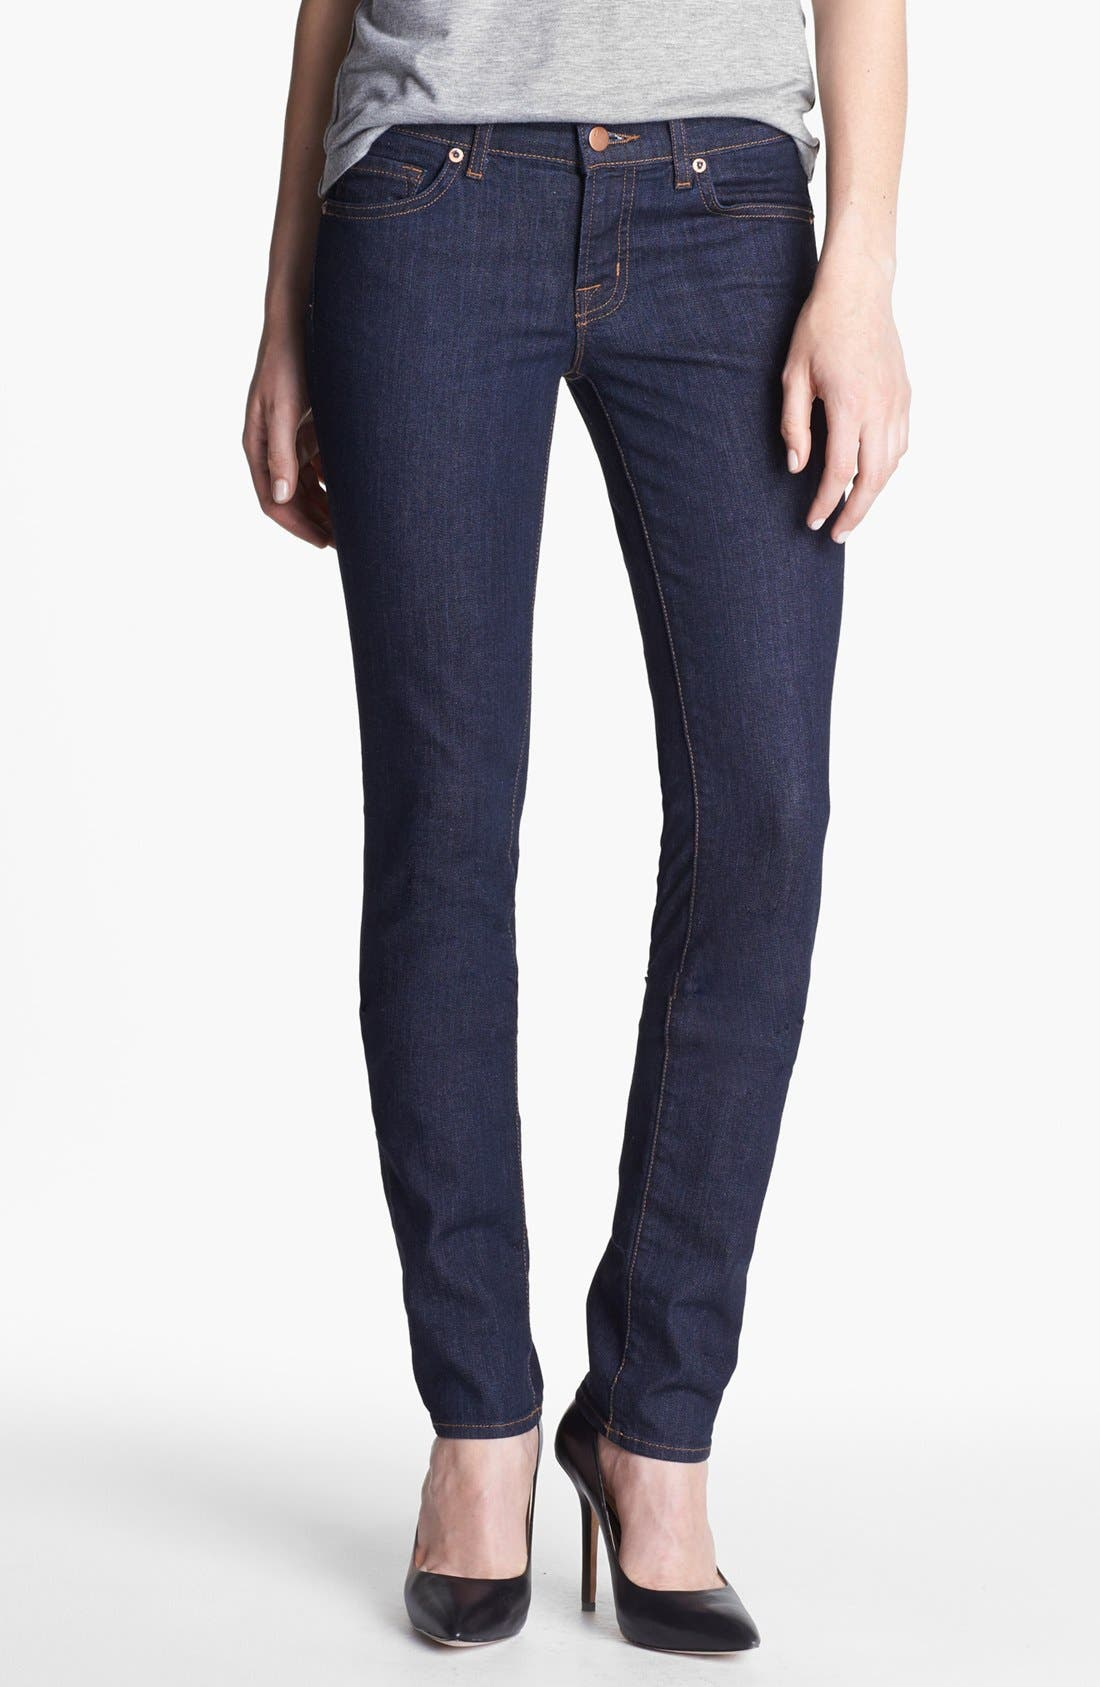 Alternate Image 1 Selected - J Brand Skinny Stretch Jeans (Pure Wash)